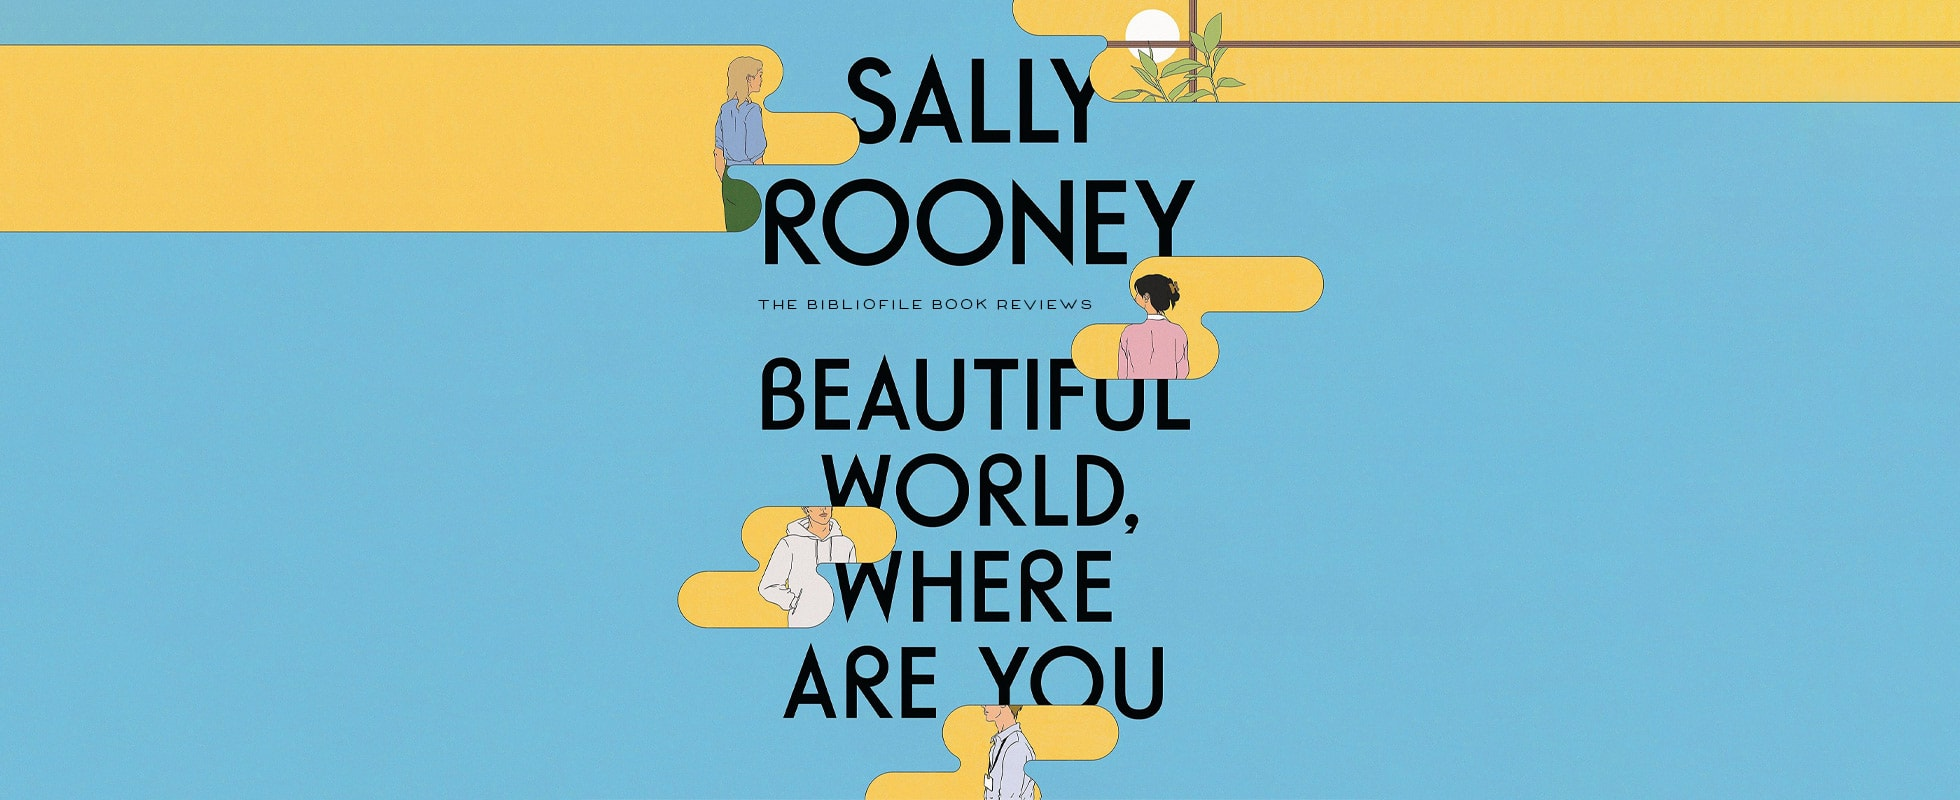 beautiful world, where are you by sally rooney book review plot summary synopsis review ending discussion spoilers